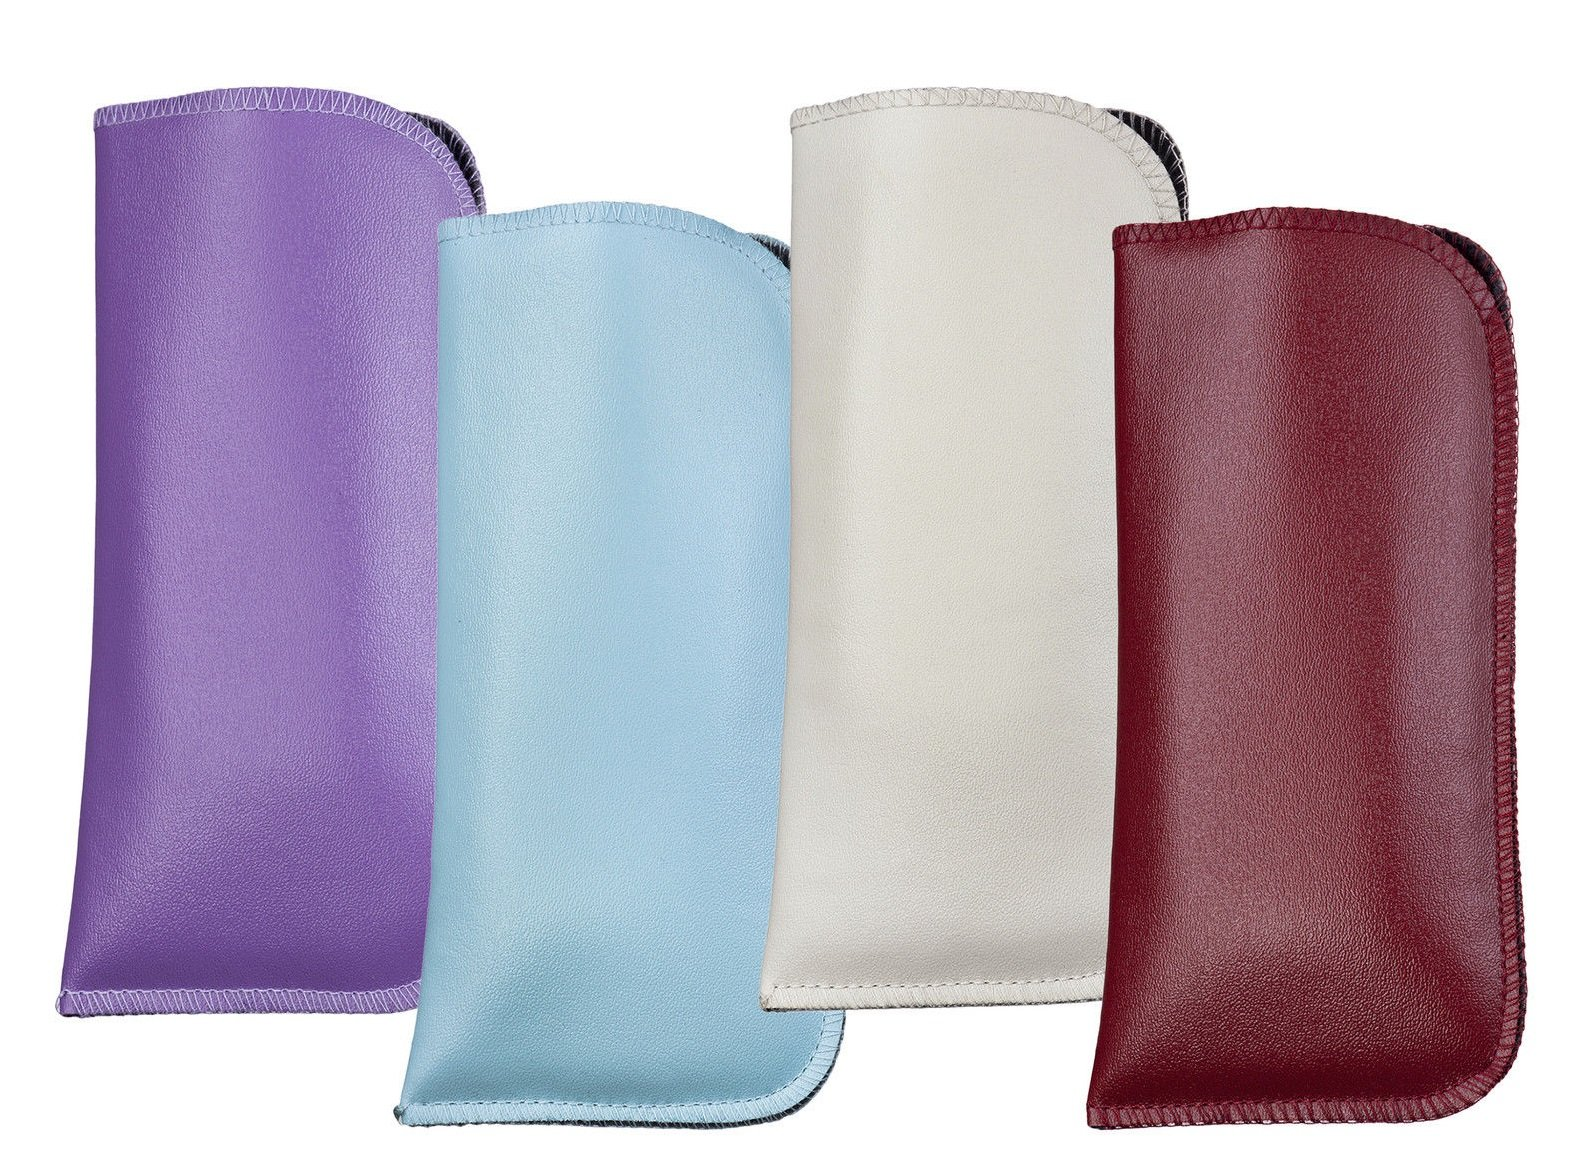 100Pack Glasses Soft Case - Large Slip In Protective Sleeves - 80x160mm by Capri Optics